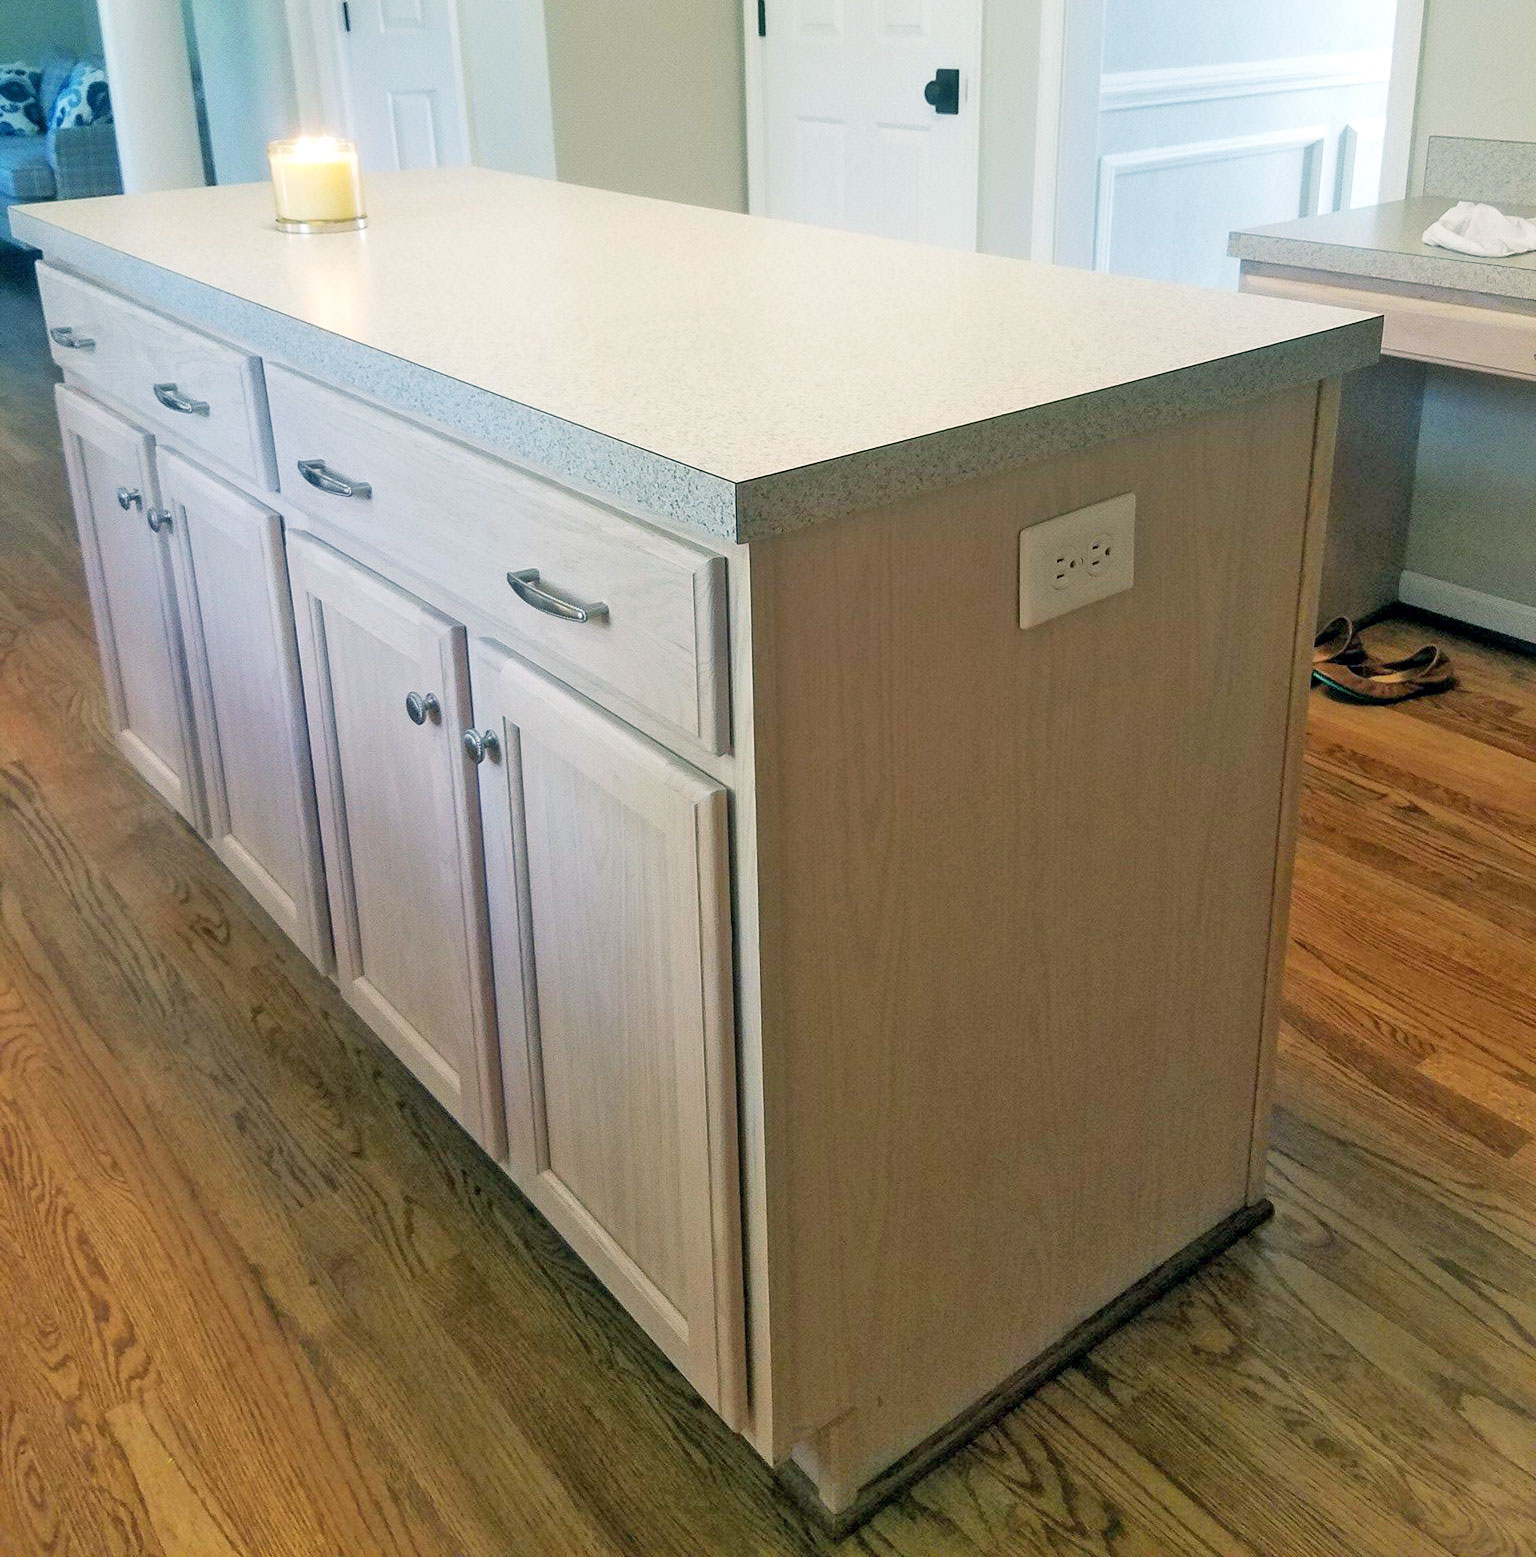 Best Water Based Paint For Kitchen Cabinets Uk: Snow White Kitchen Cabinet Transformation